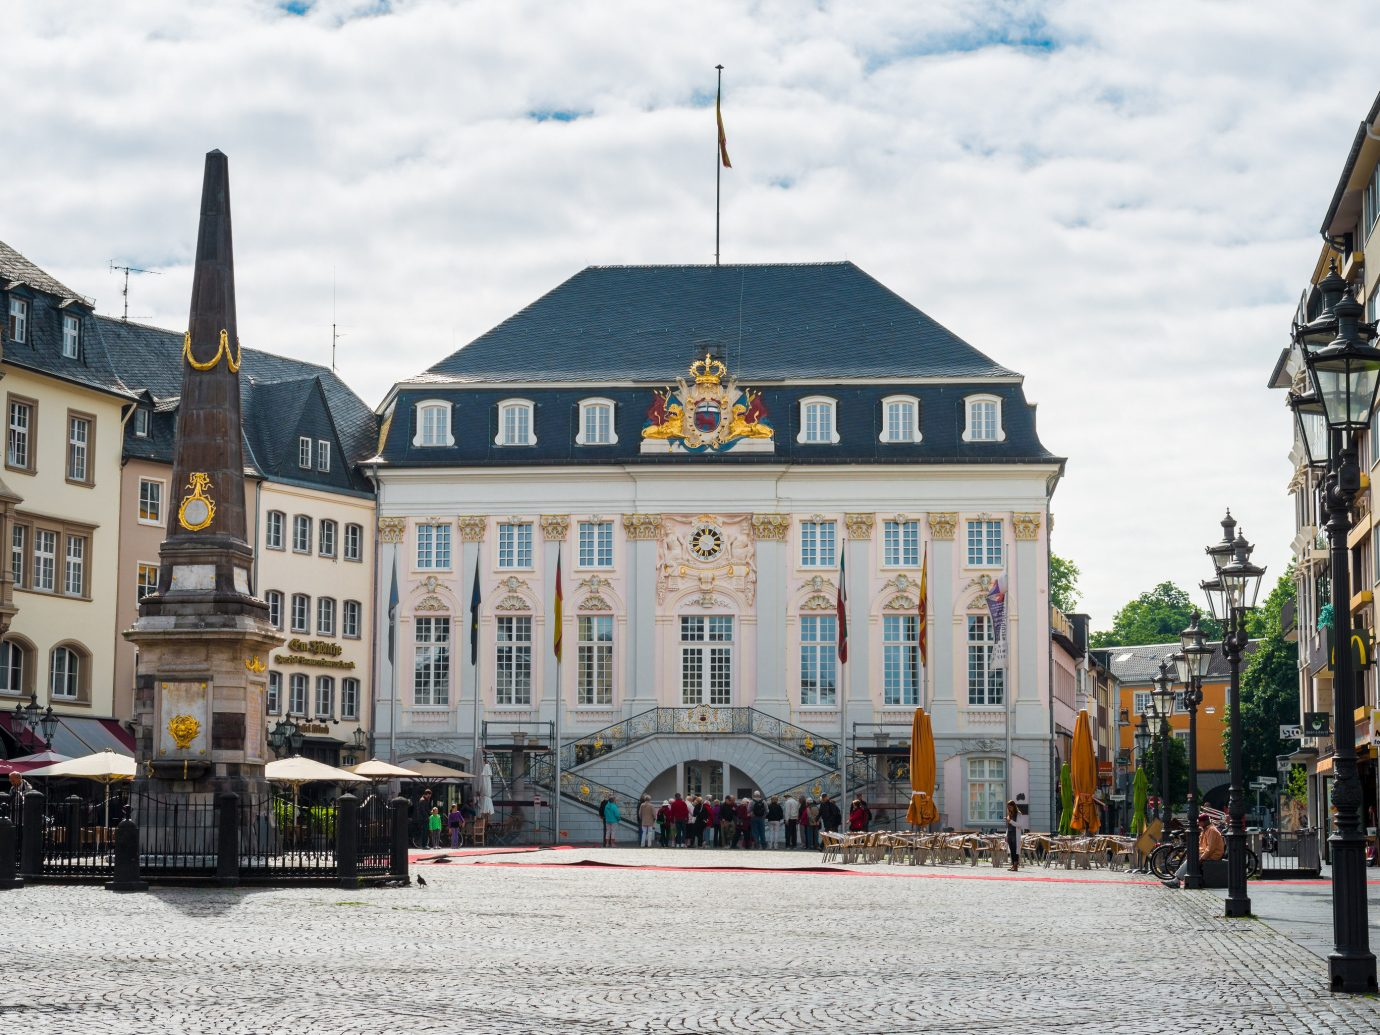 Berlin europe Germany Trip Ideas Town landmark town square City building sky château Downtown metropolis tourist attraction plaza facade street neighbourhood house palace medieval architecture seat of local government window tours tourism classical architecture estate